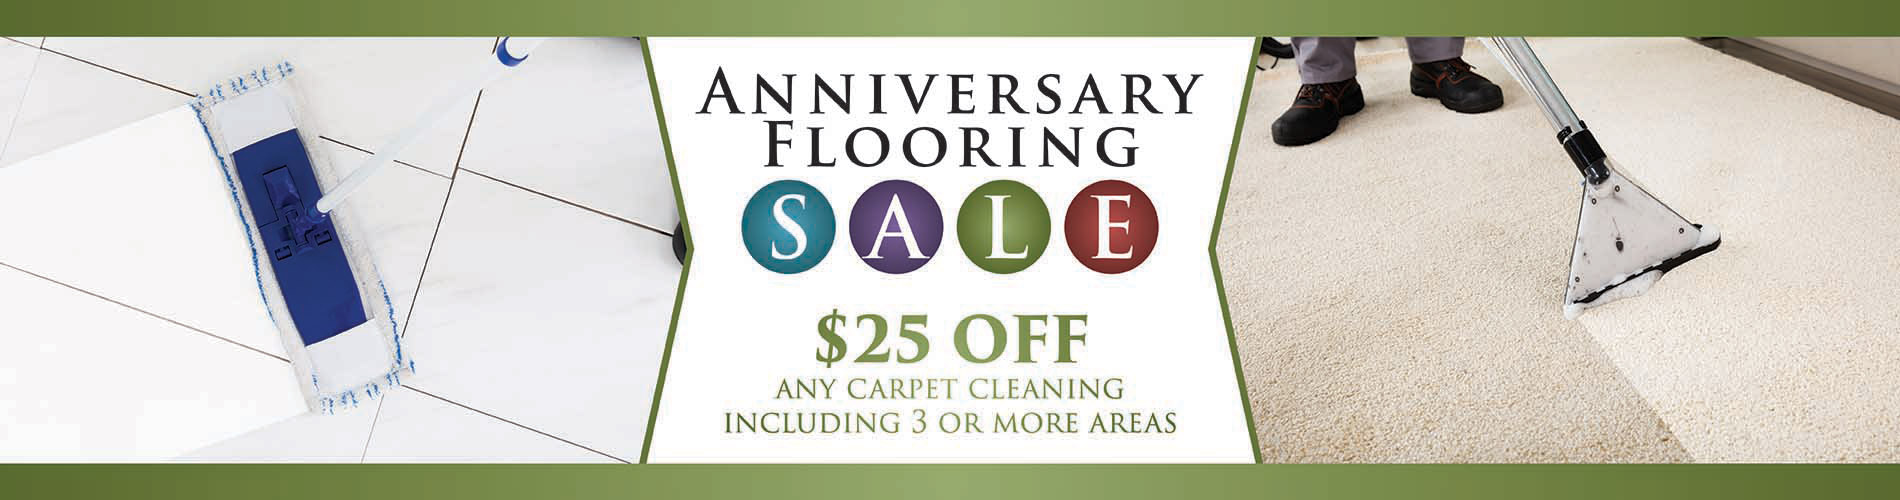 $25 off any carpet cleaning including 3 or more areas during our Anniversary Flooring Sale